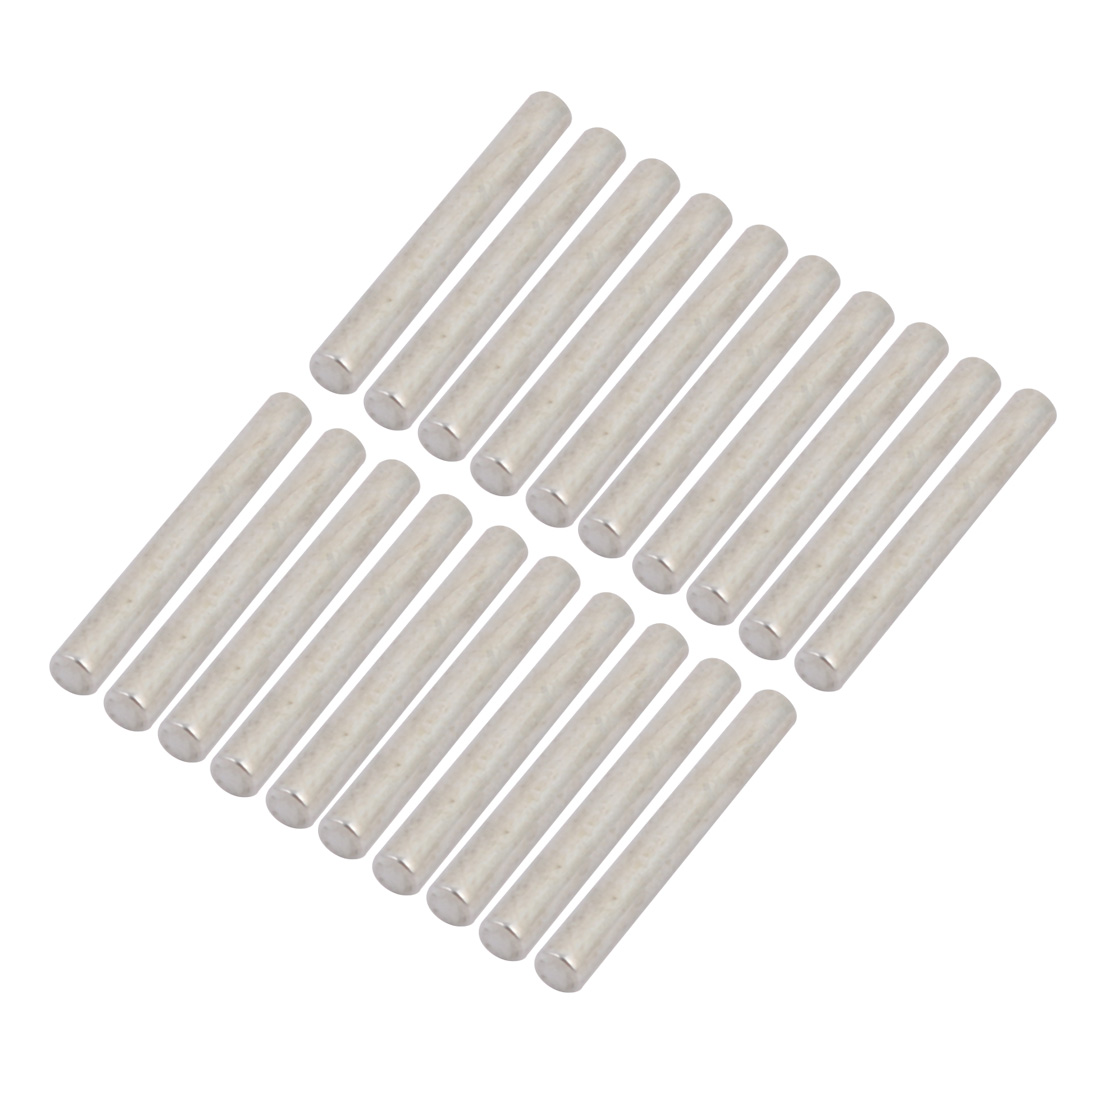 20Pcs Round Shaft Solid Steel Rods Axles 3mm x 25mm Silver Tone